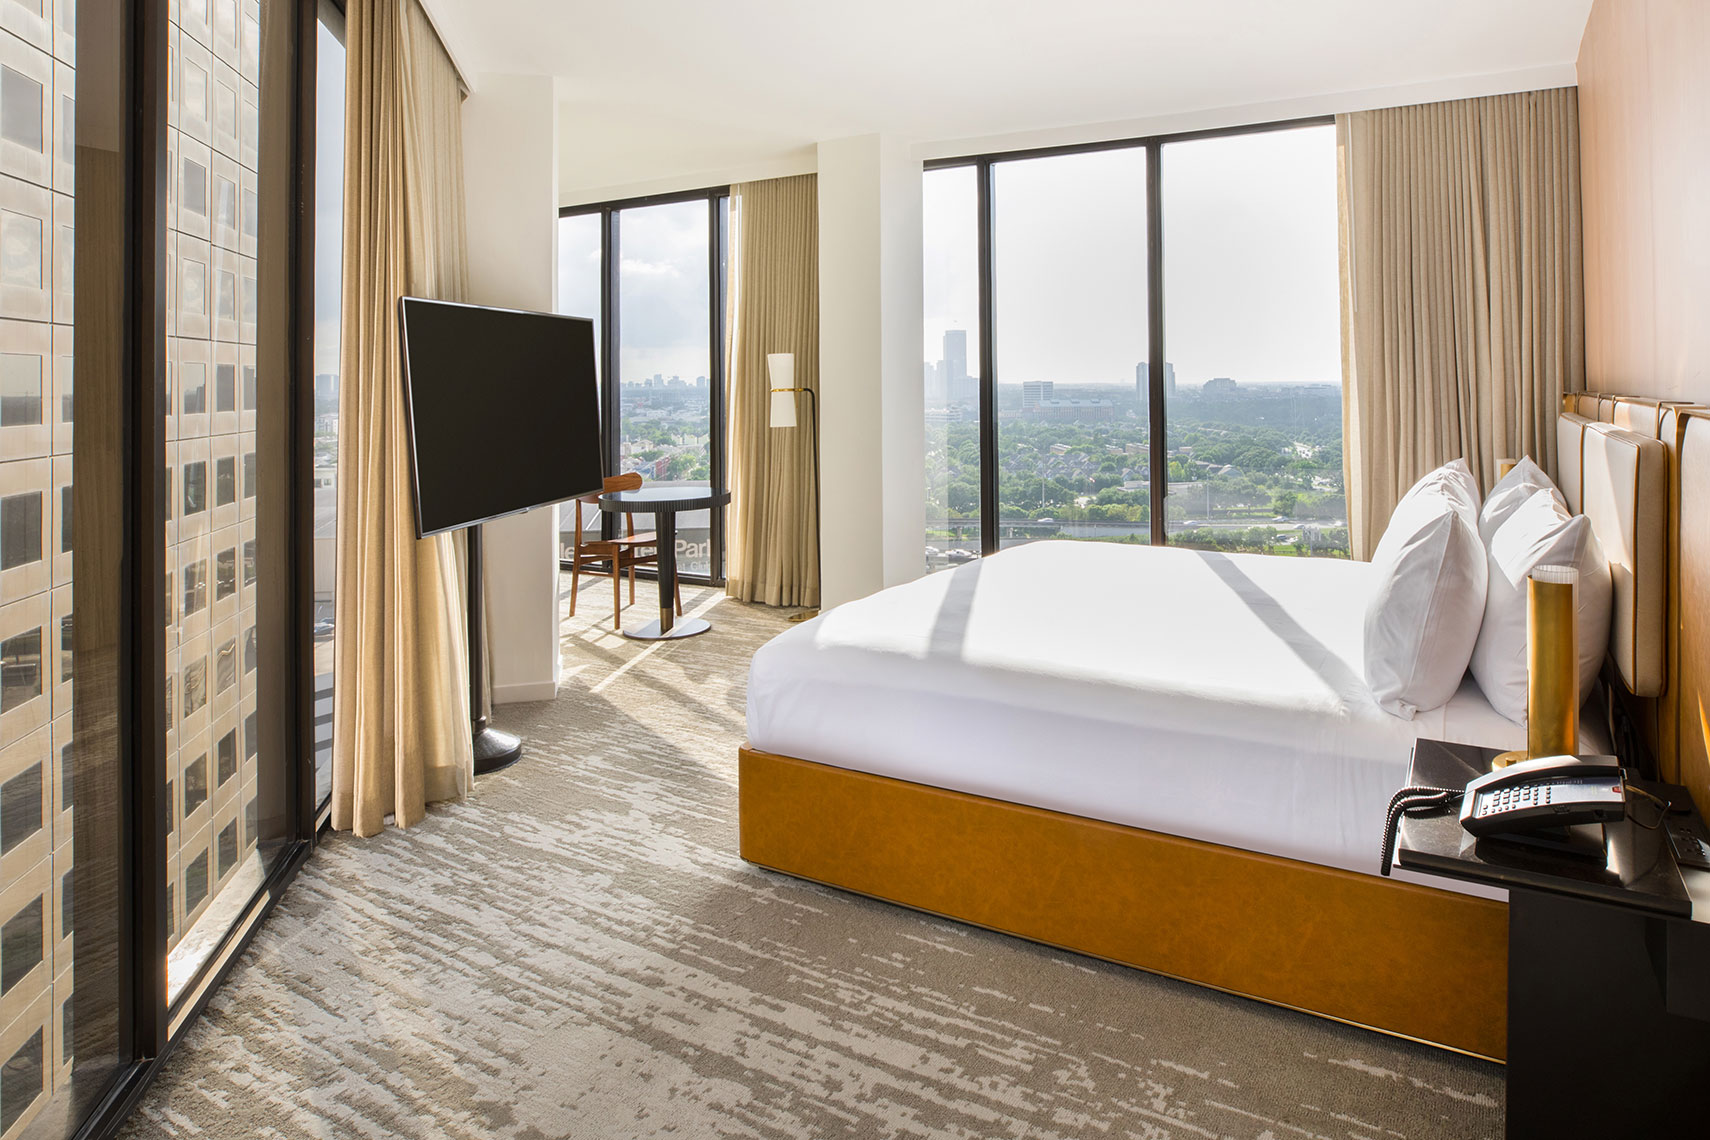 C Baldwin Hotel Room in Houston by Texas Architecture photographer Shannon O